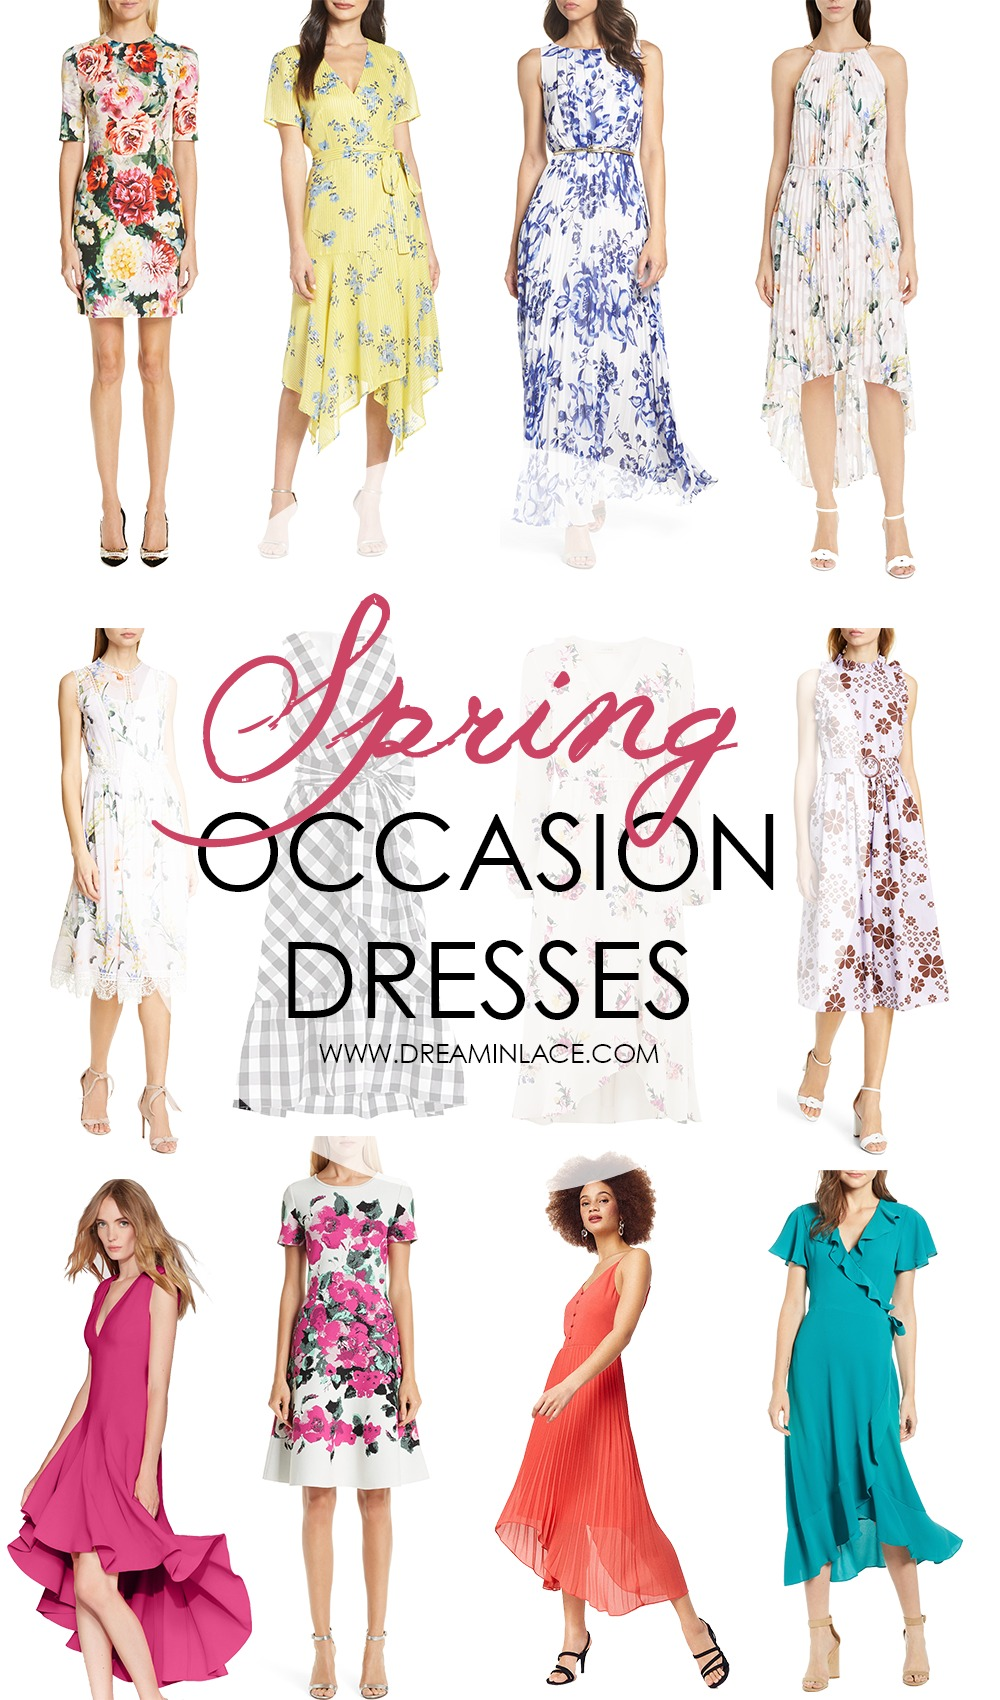 Spring Occasion Dresses I Dreaminlace.com #springstyle #styletips